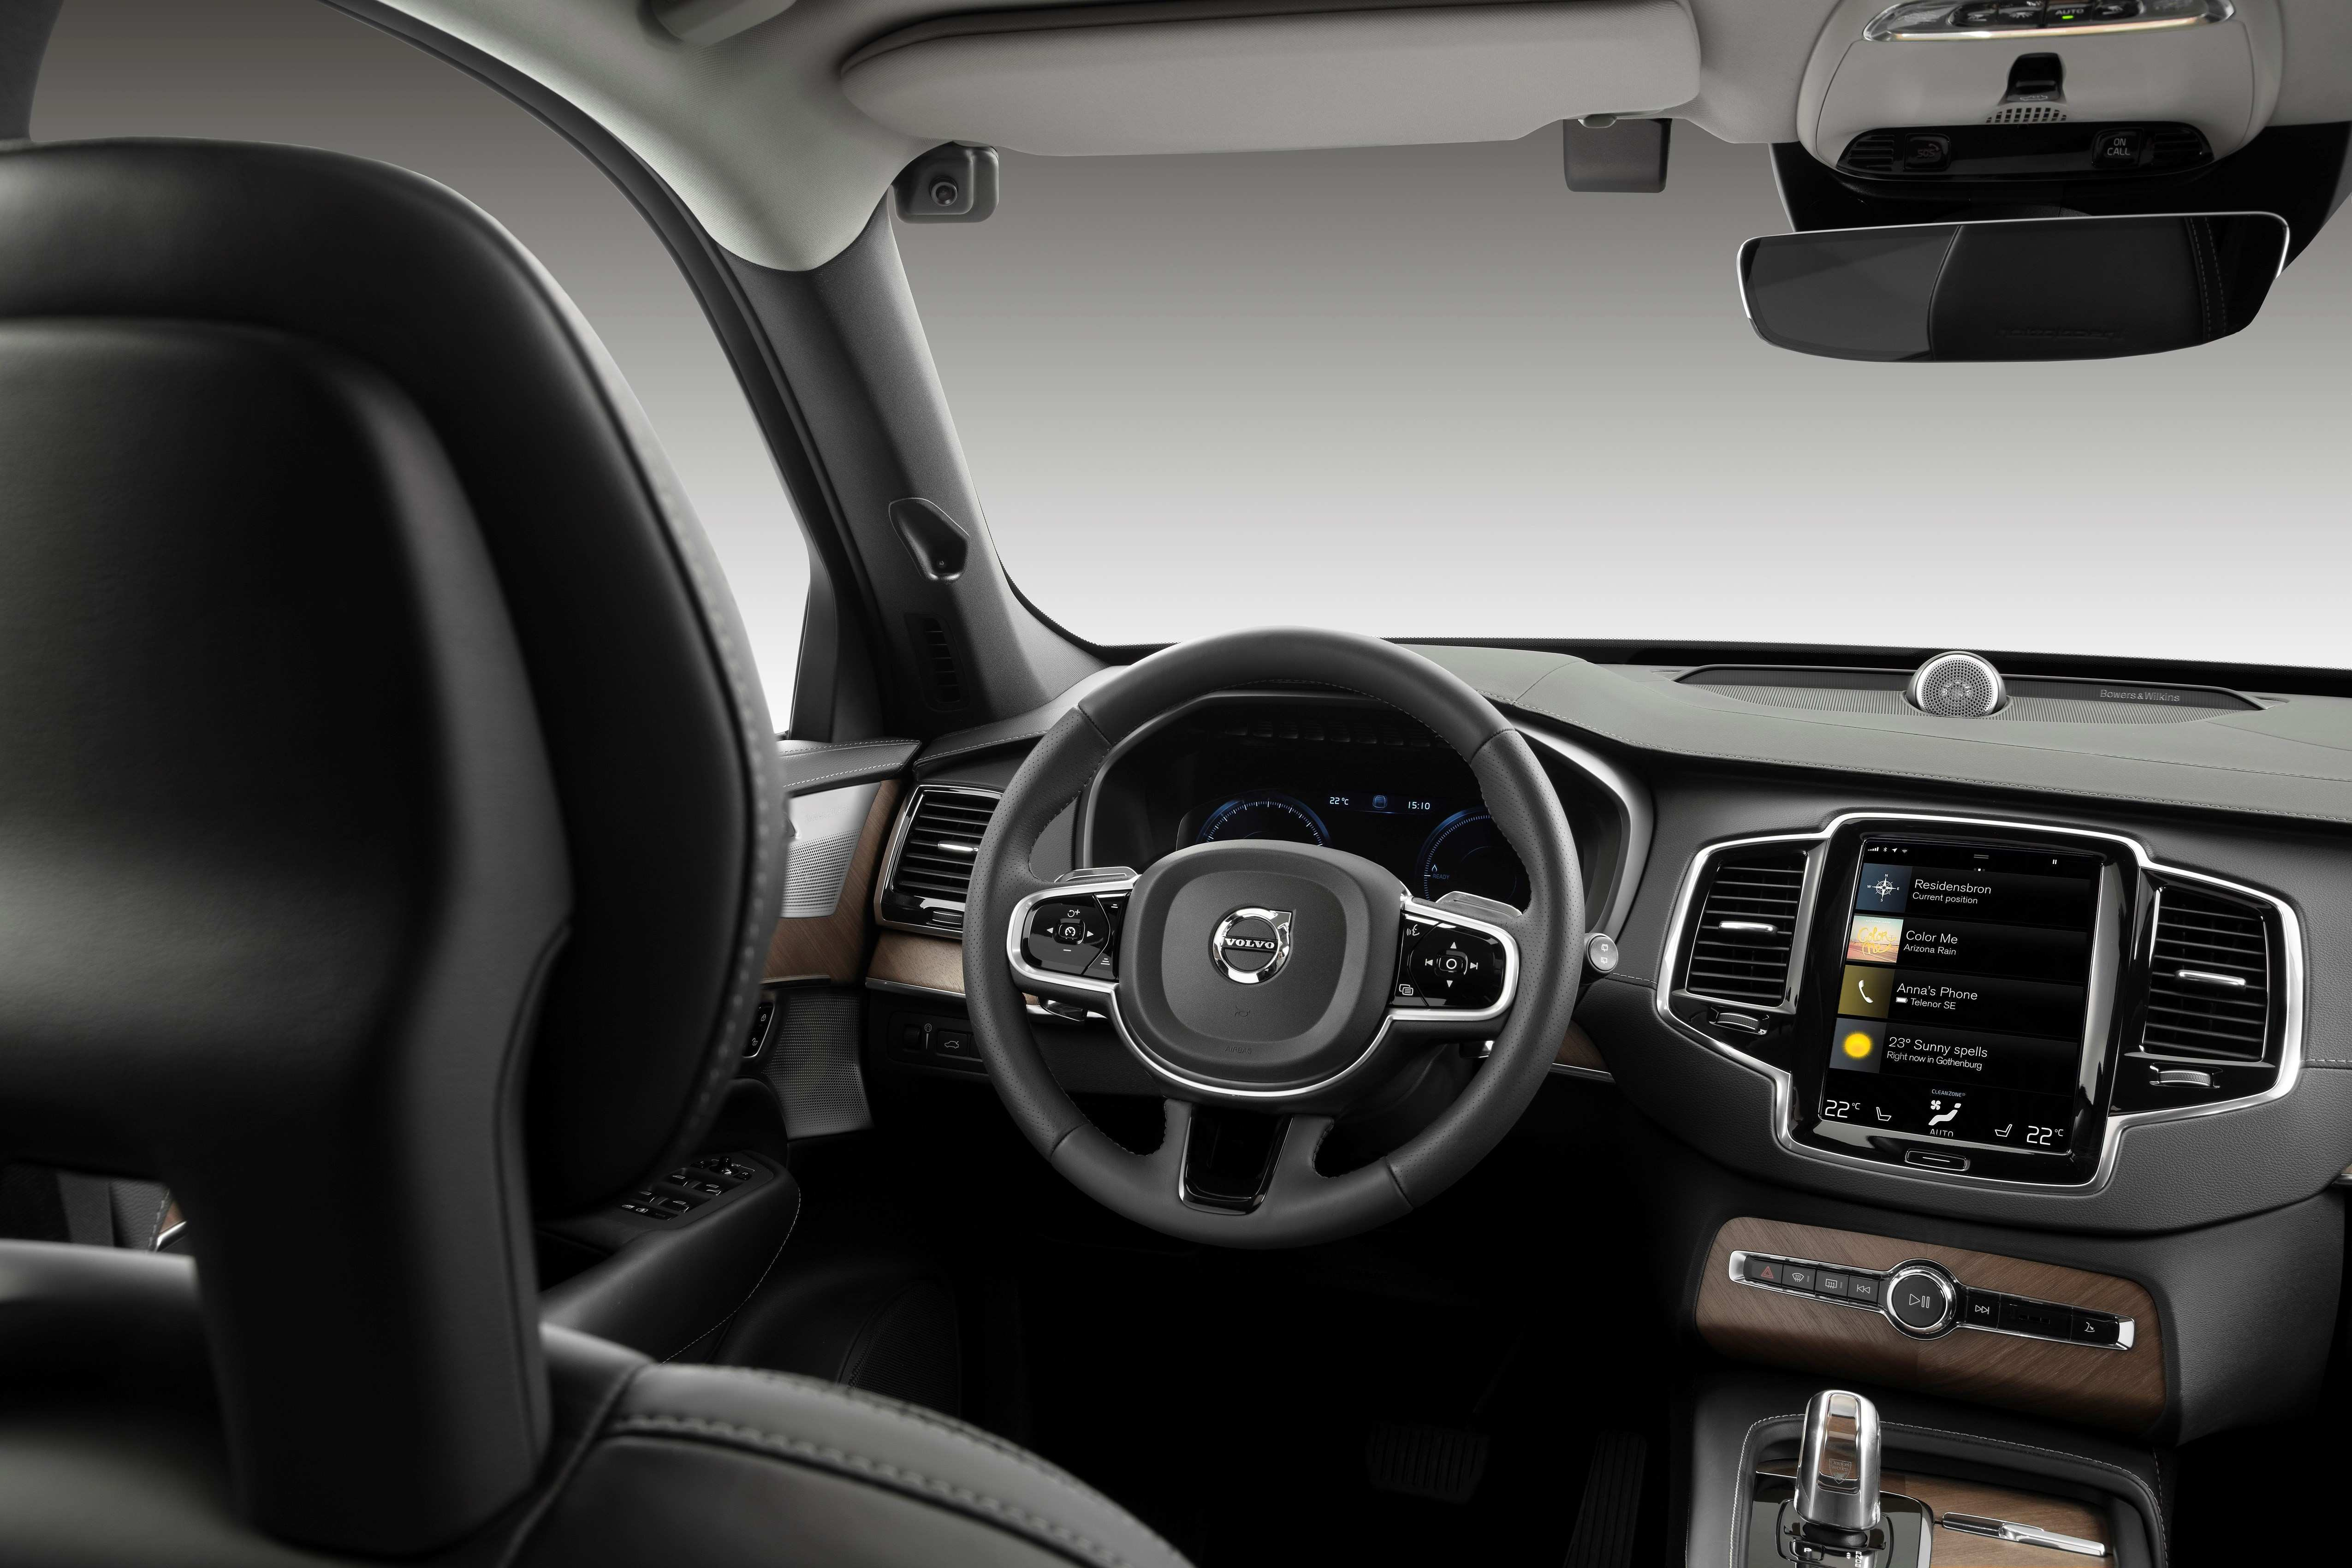 77 A Volvo S Safety Goal No Deaths By 2020 Picture